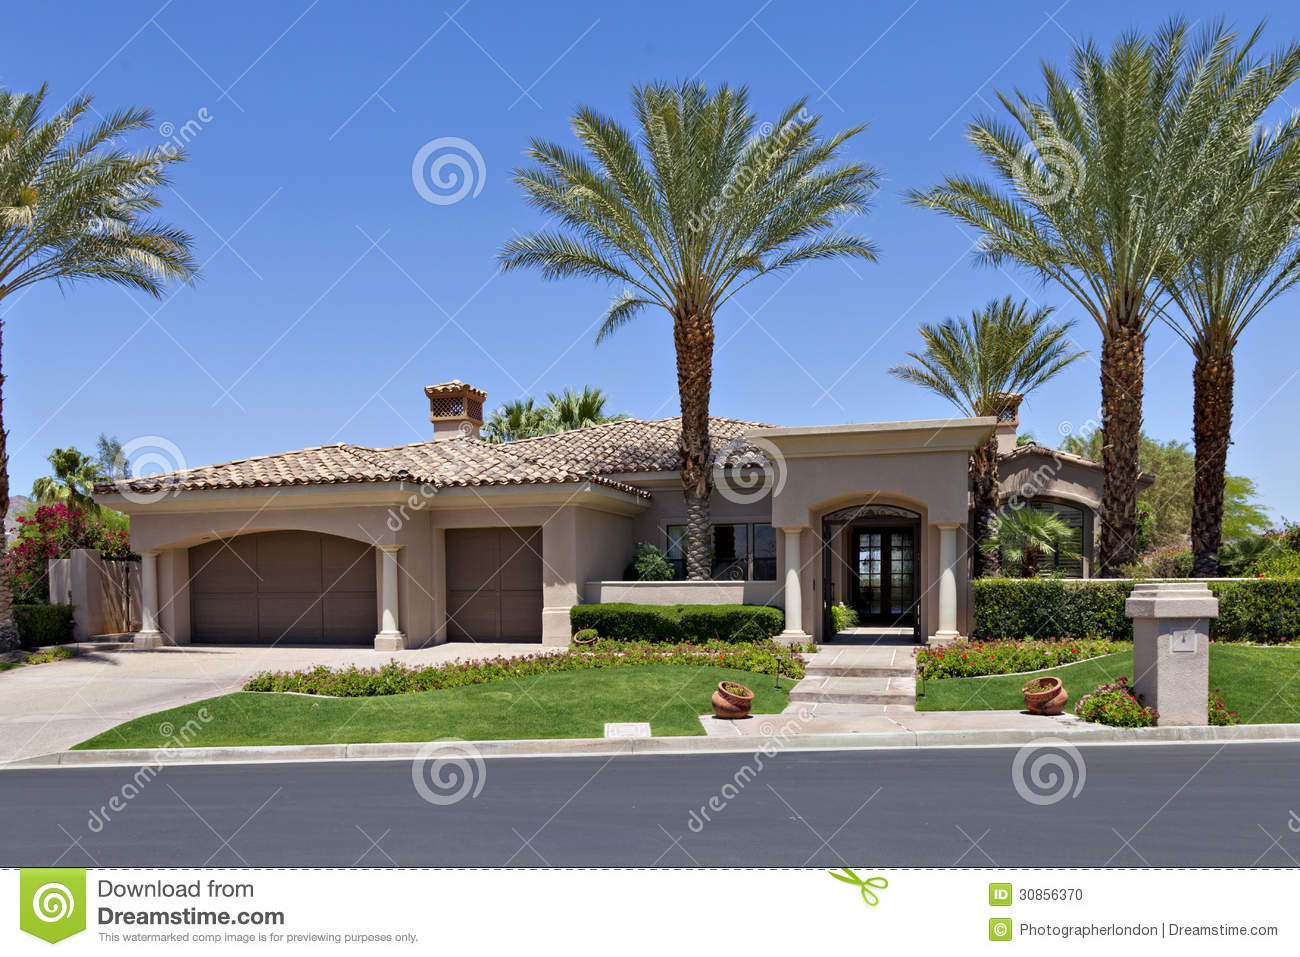 Entr e un bel ext rieur californien de maison photo for Entree de maison exterieur